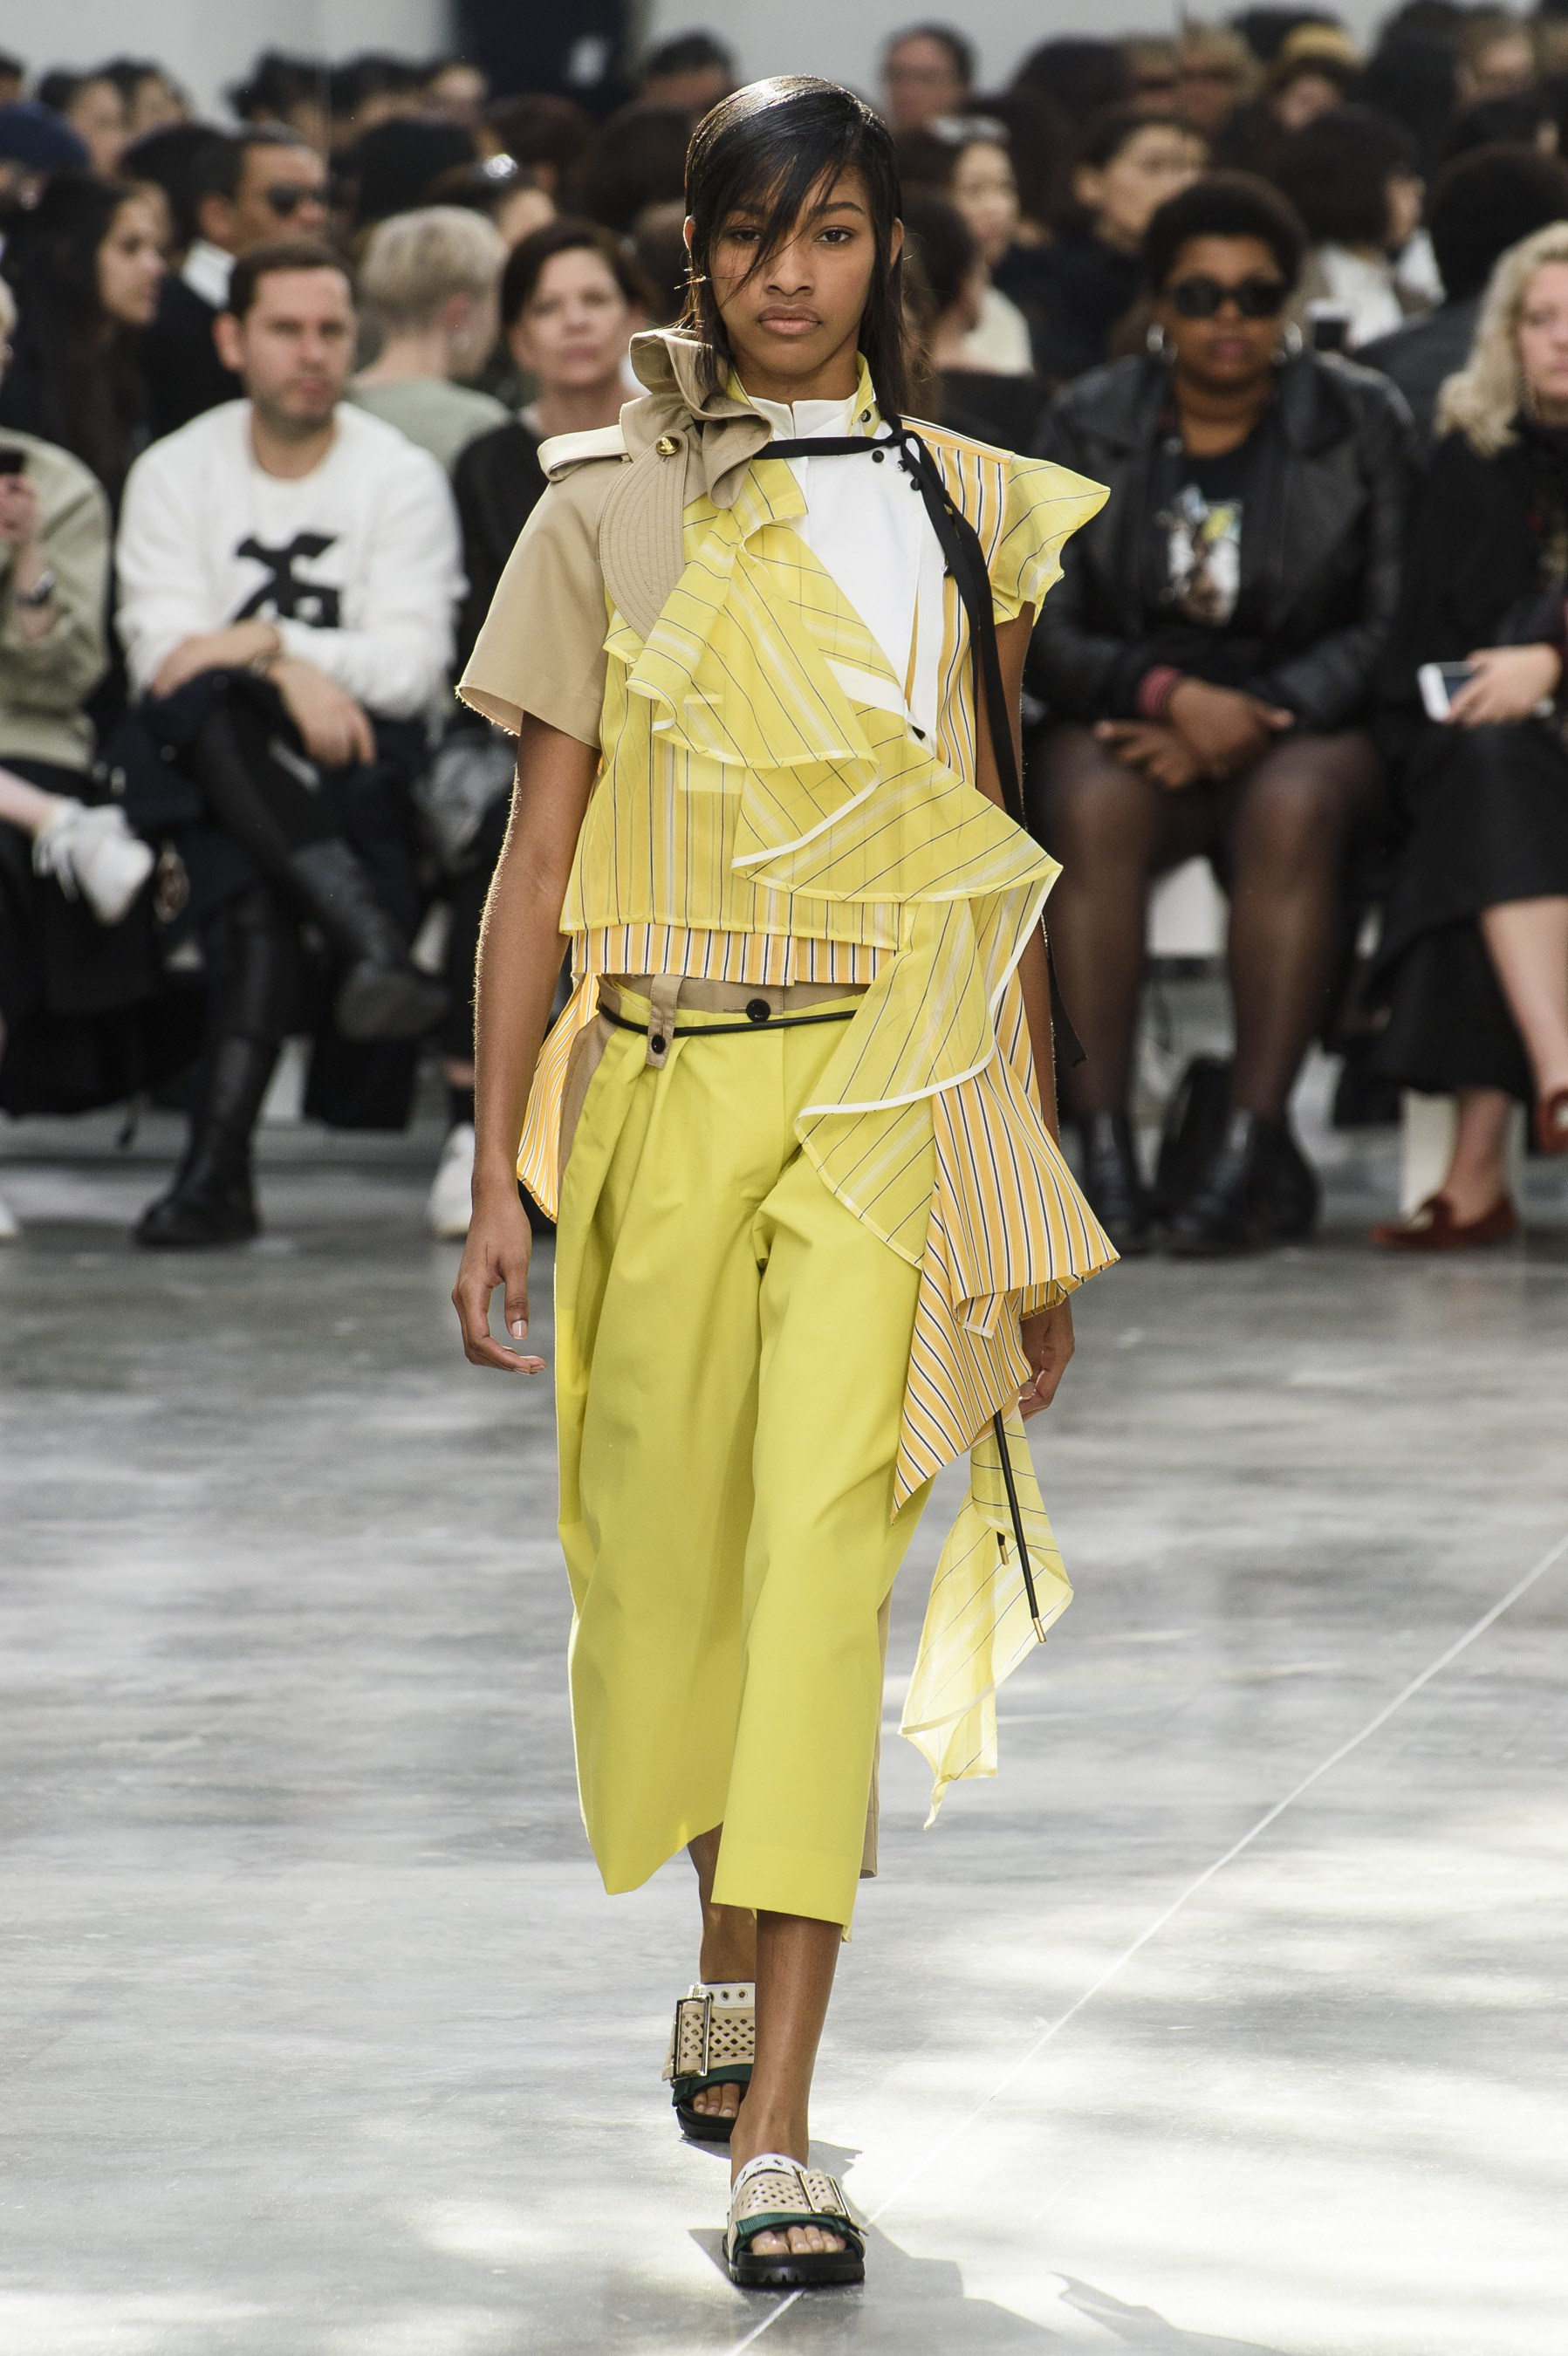 Buttercup Yellow Fashion Trend Spring 2019